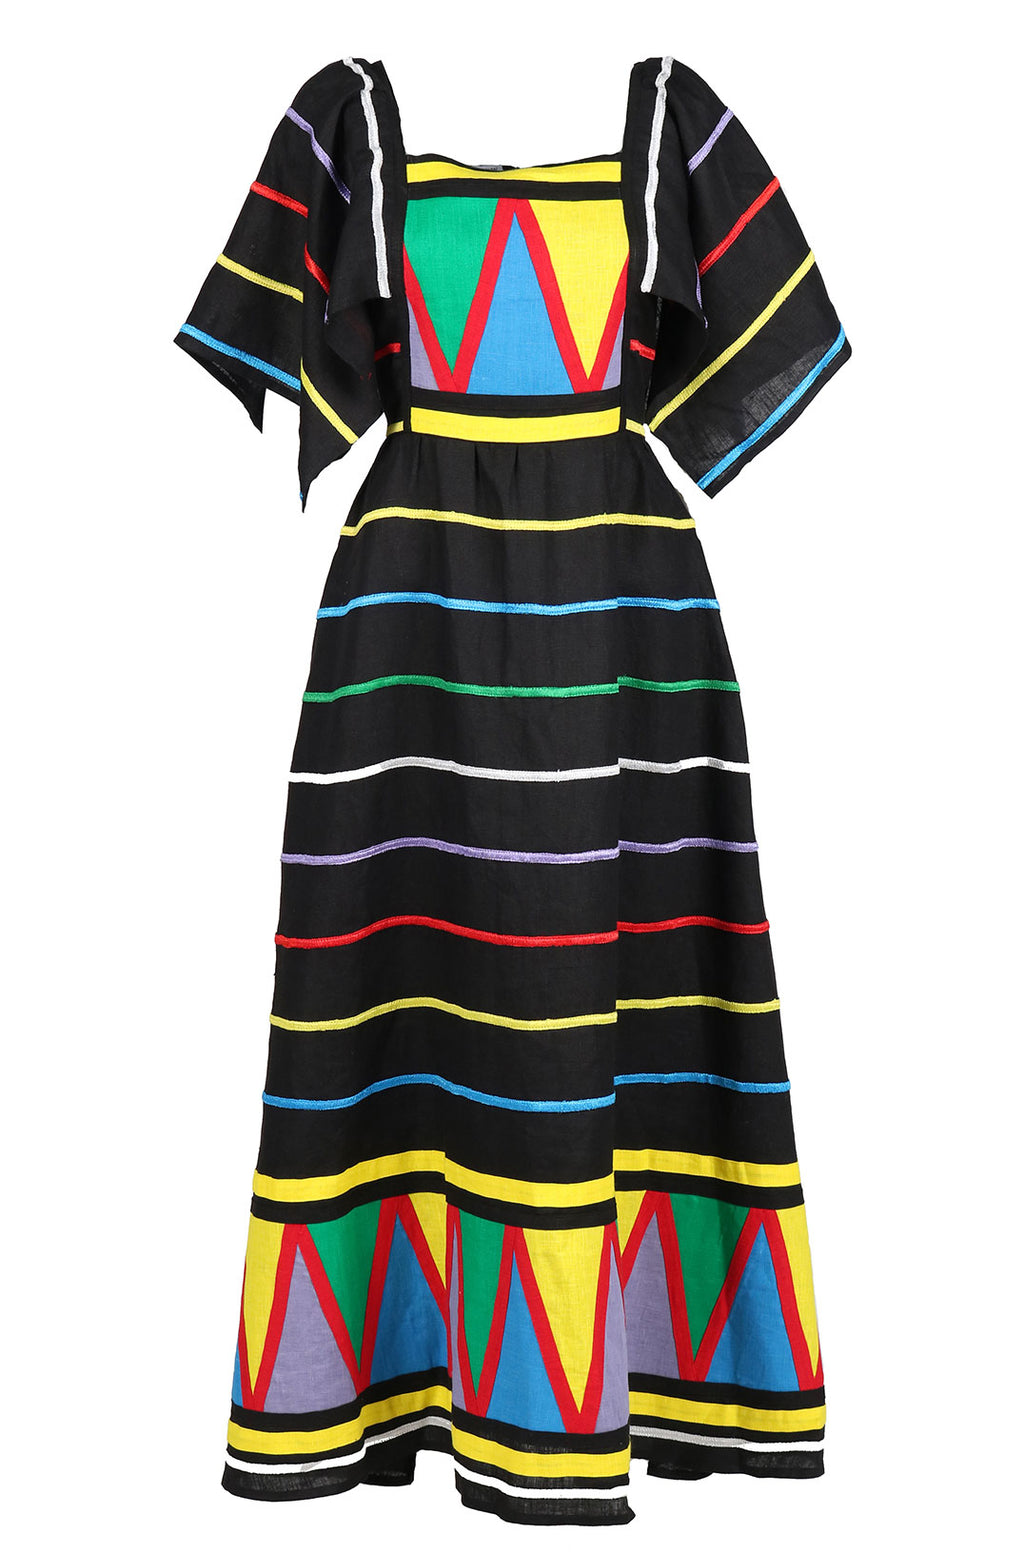 Fanm Mon Black Linen, Multi- color striped Embrodery Maxi Dress size XS-XXL SRTP001